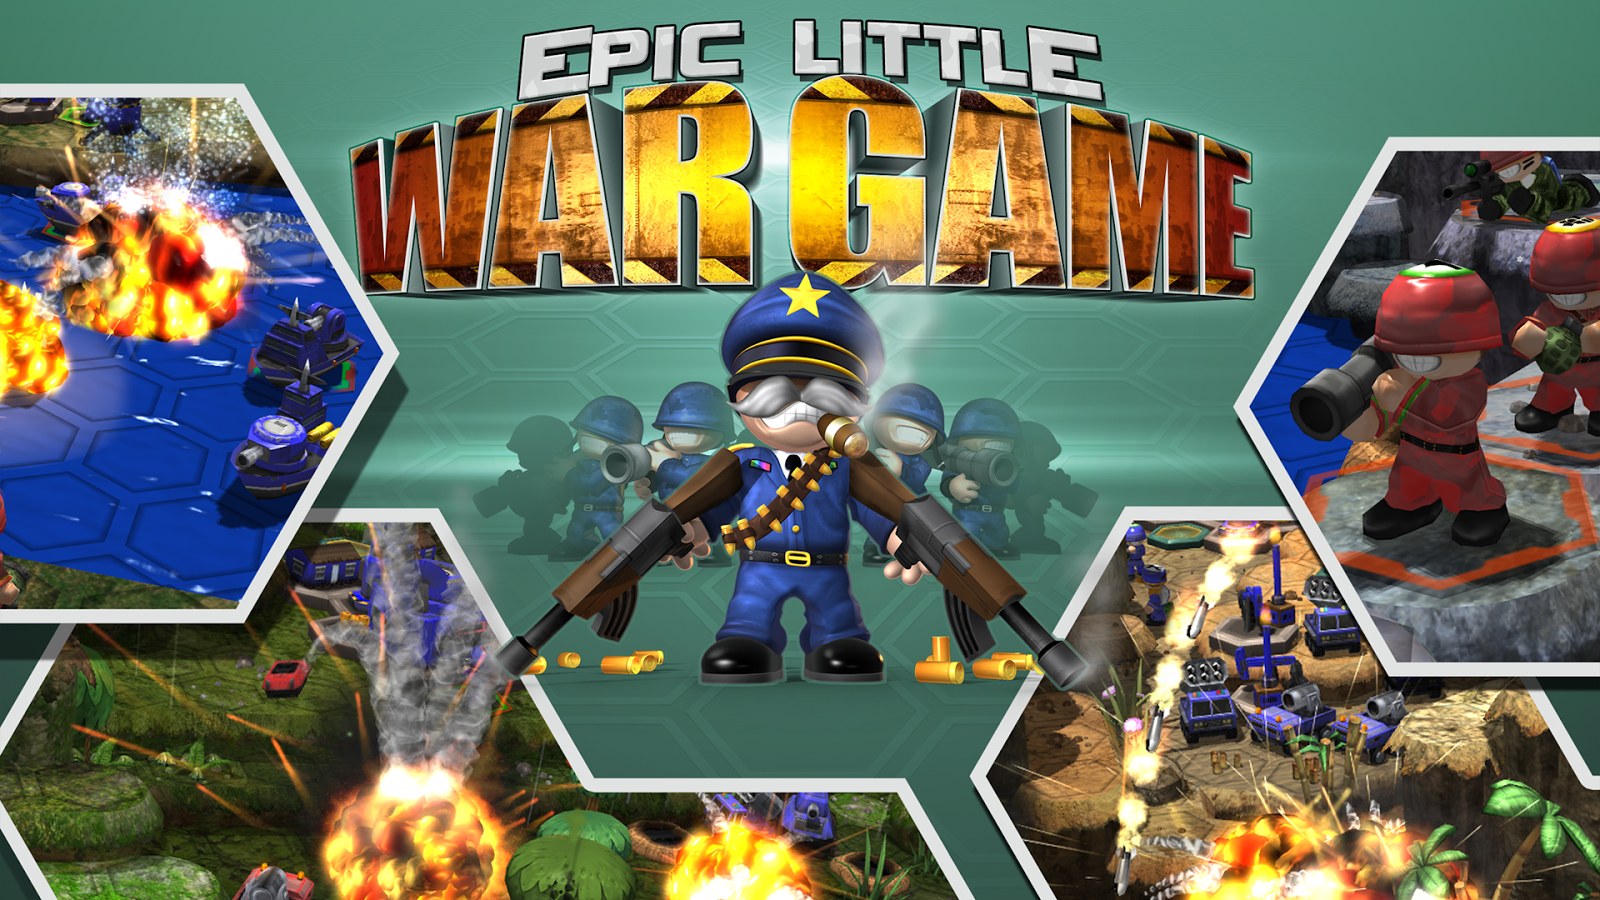 epic little war game is the first new title in the series in three